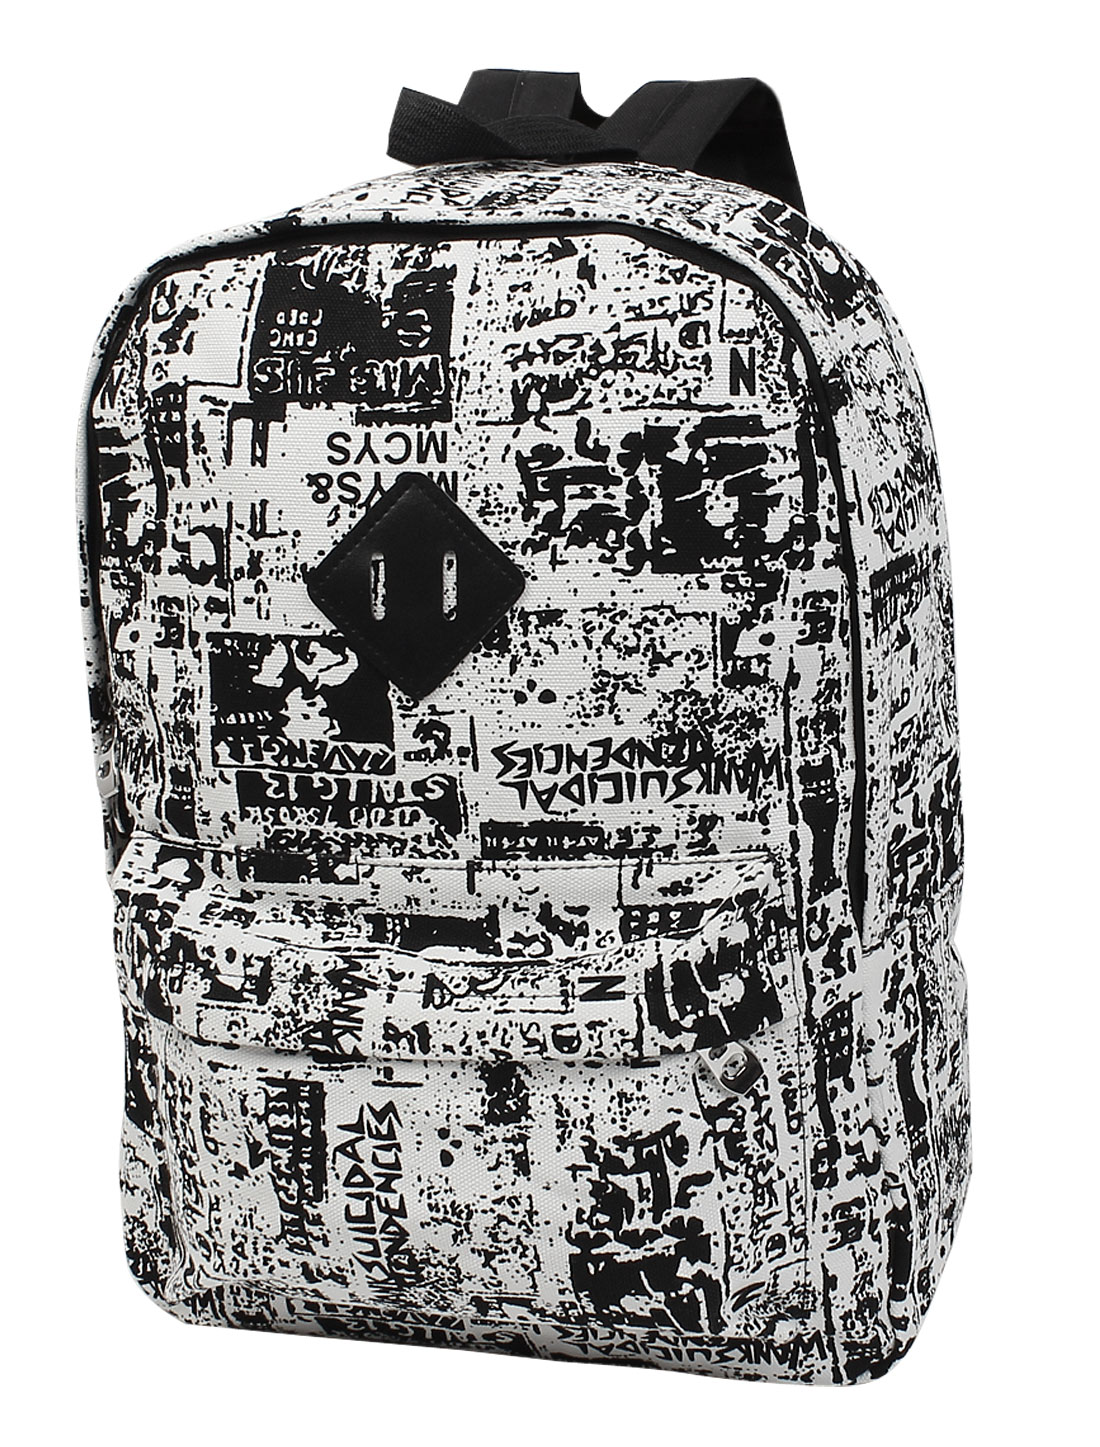 Unisex Graffiti Print Travel Casual Canvas Backpack School Bag Rucksack Black